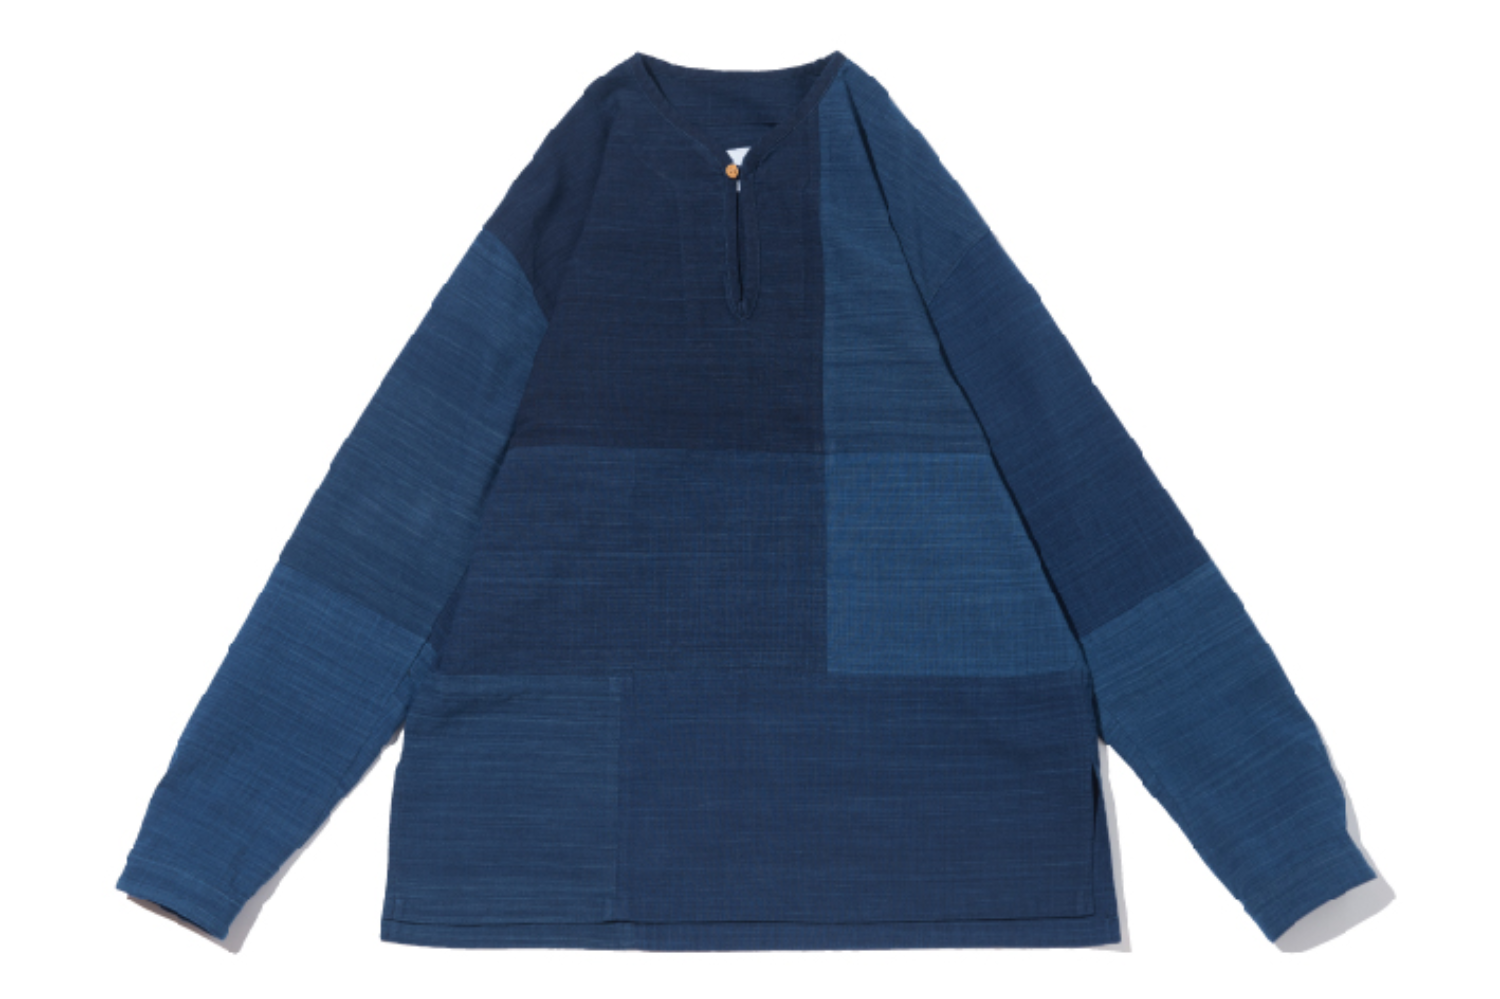 Patchwork indigo collarless tunic shirt (natural indigo dyeing)